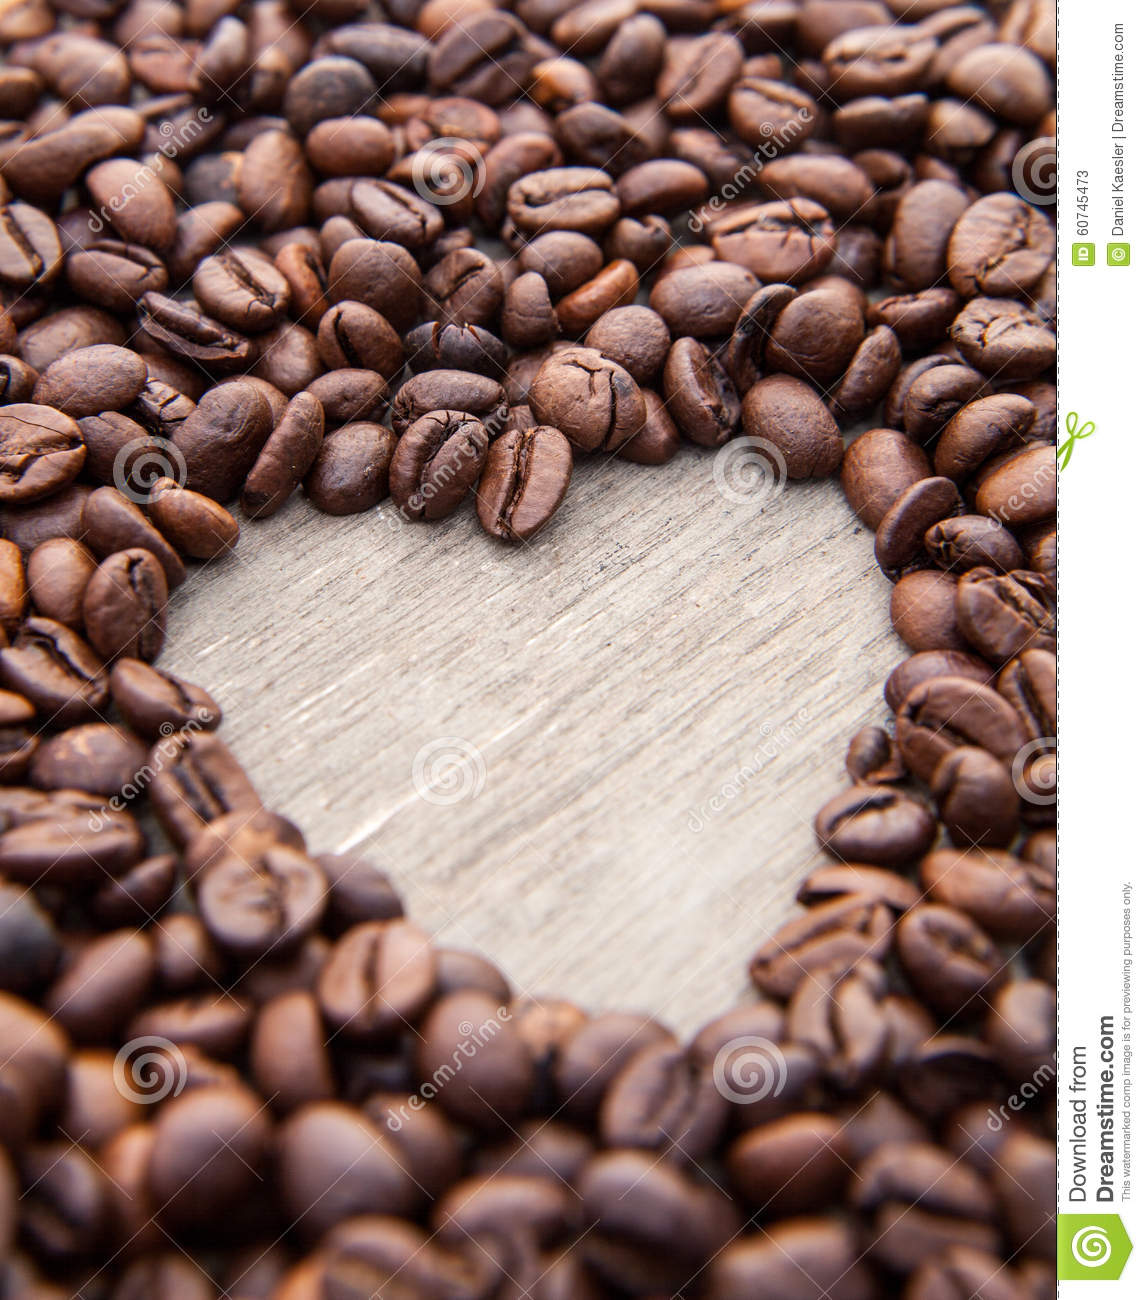 Heart Symbol Within Coffee Beans Stock Image Image Of Symbol Love